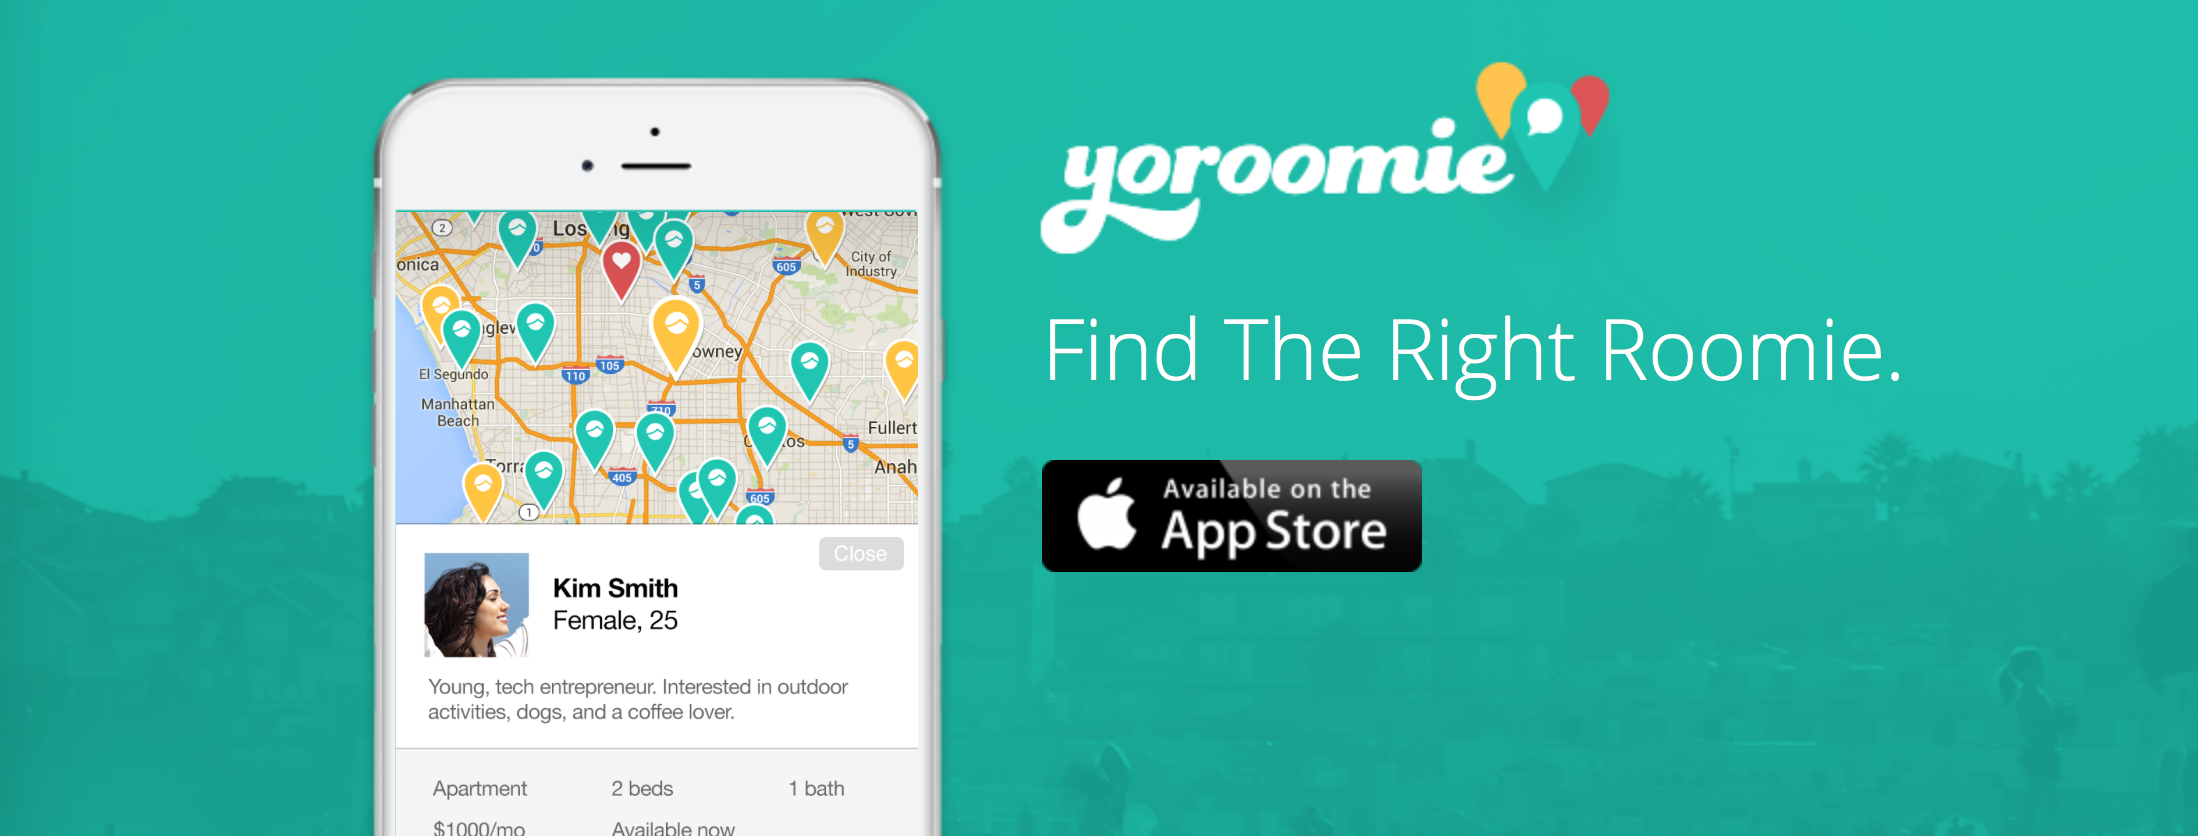 Find the right roomie for you with Yoroomie for iOS